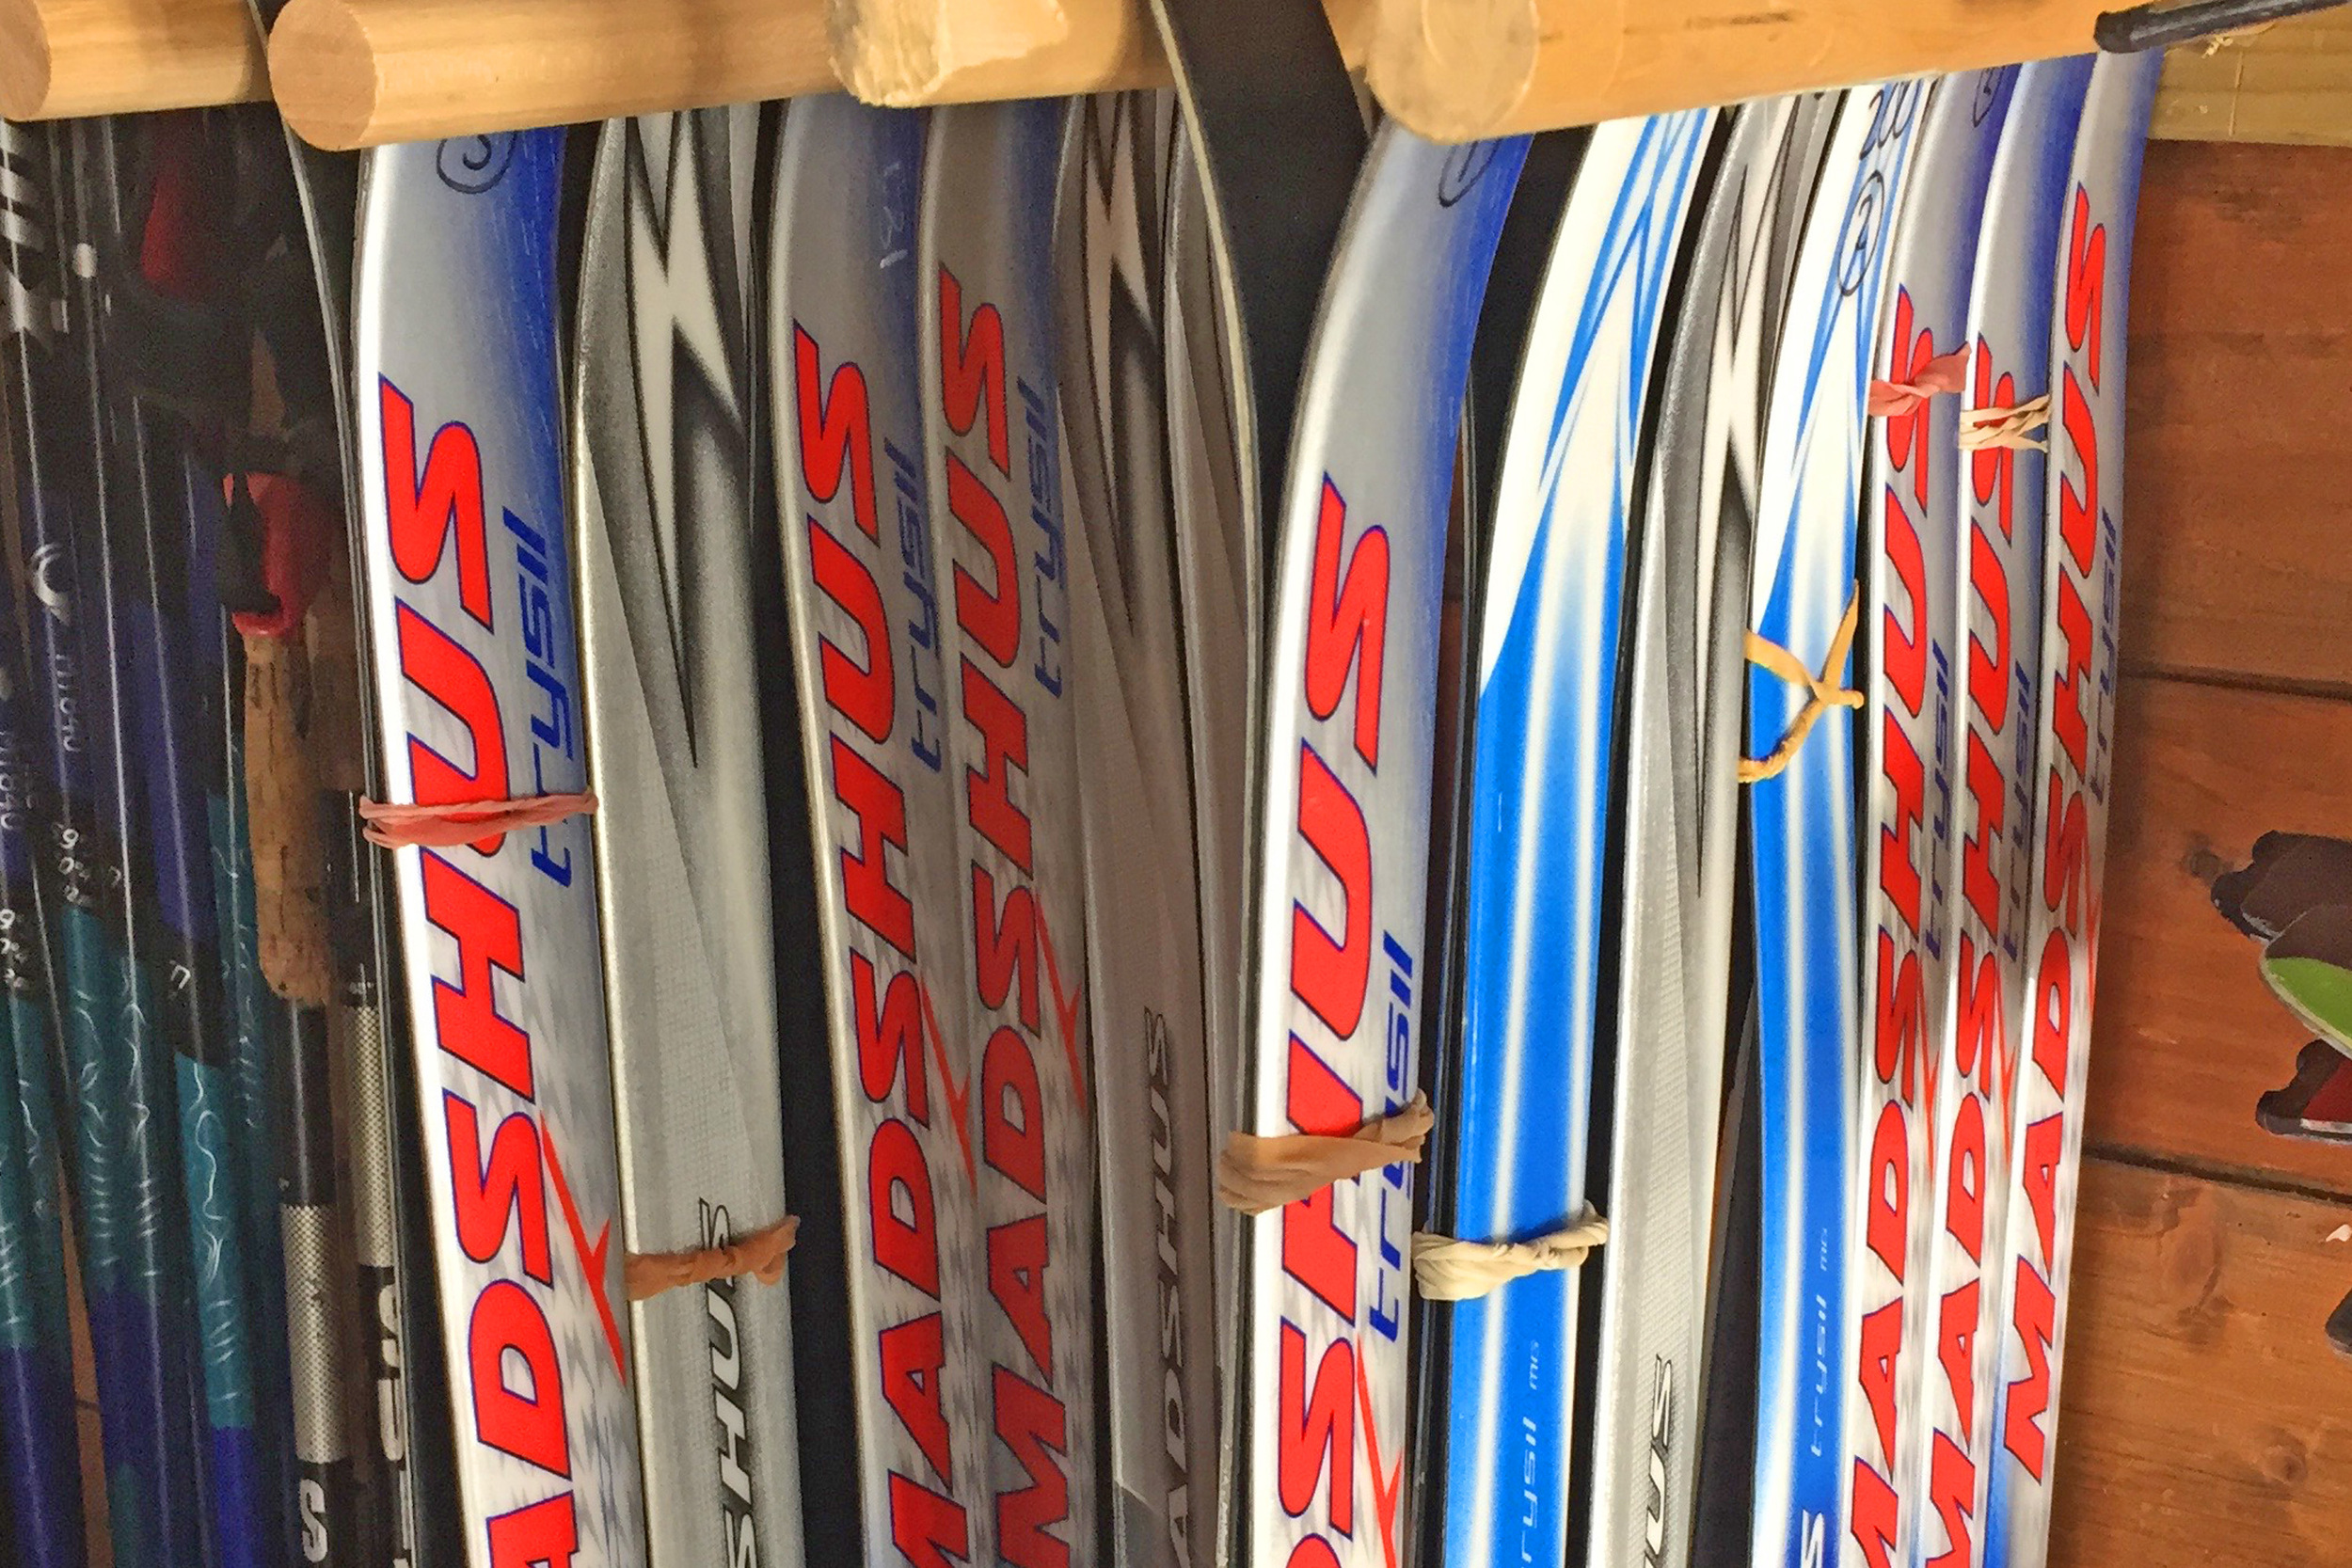 Cross Country - Nordic Track Skis